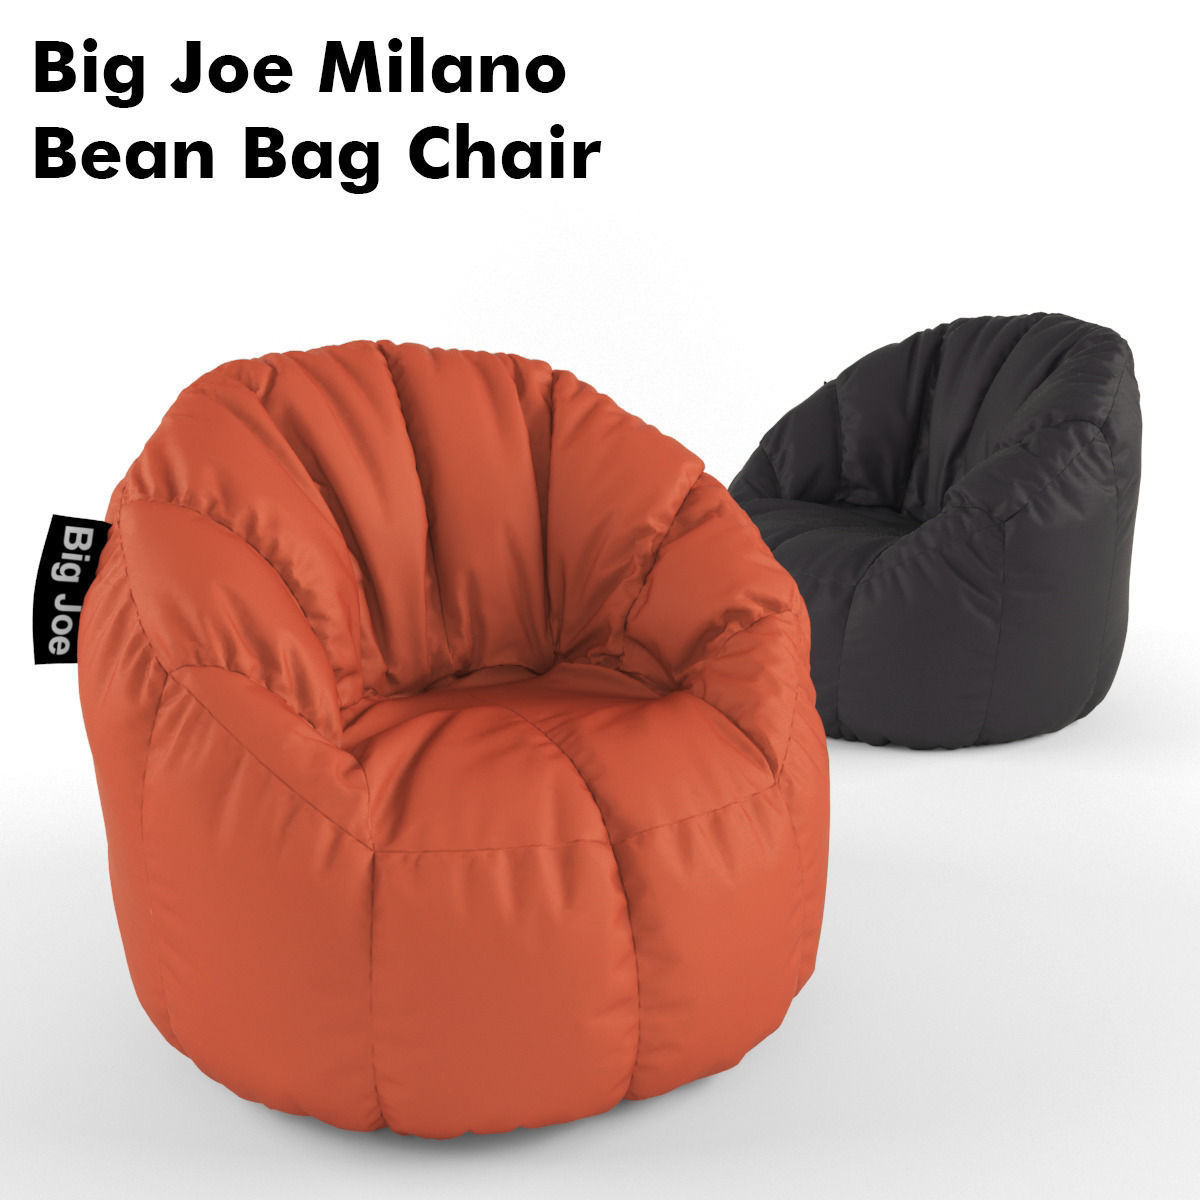 Big Joe Milano Bean Bag Chair 3d Model Max Fbx 1